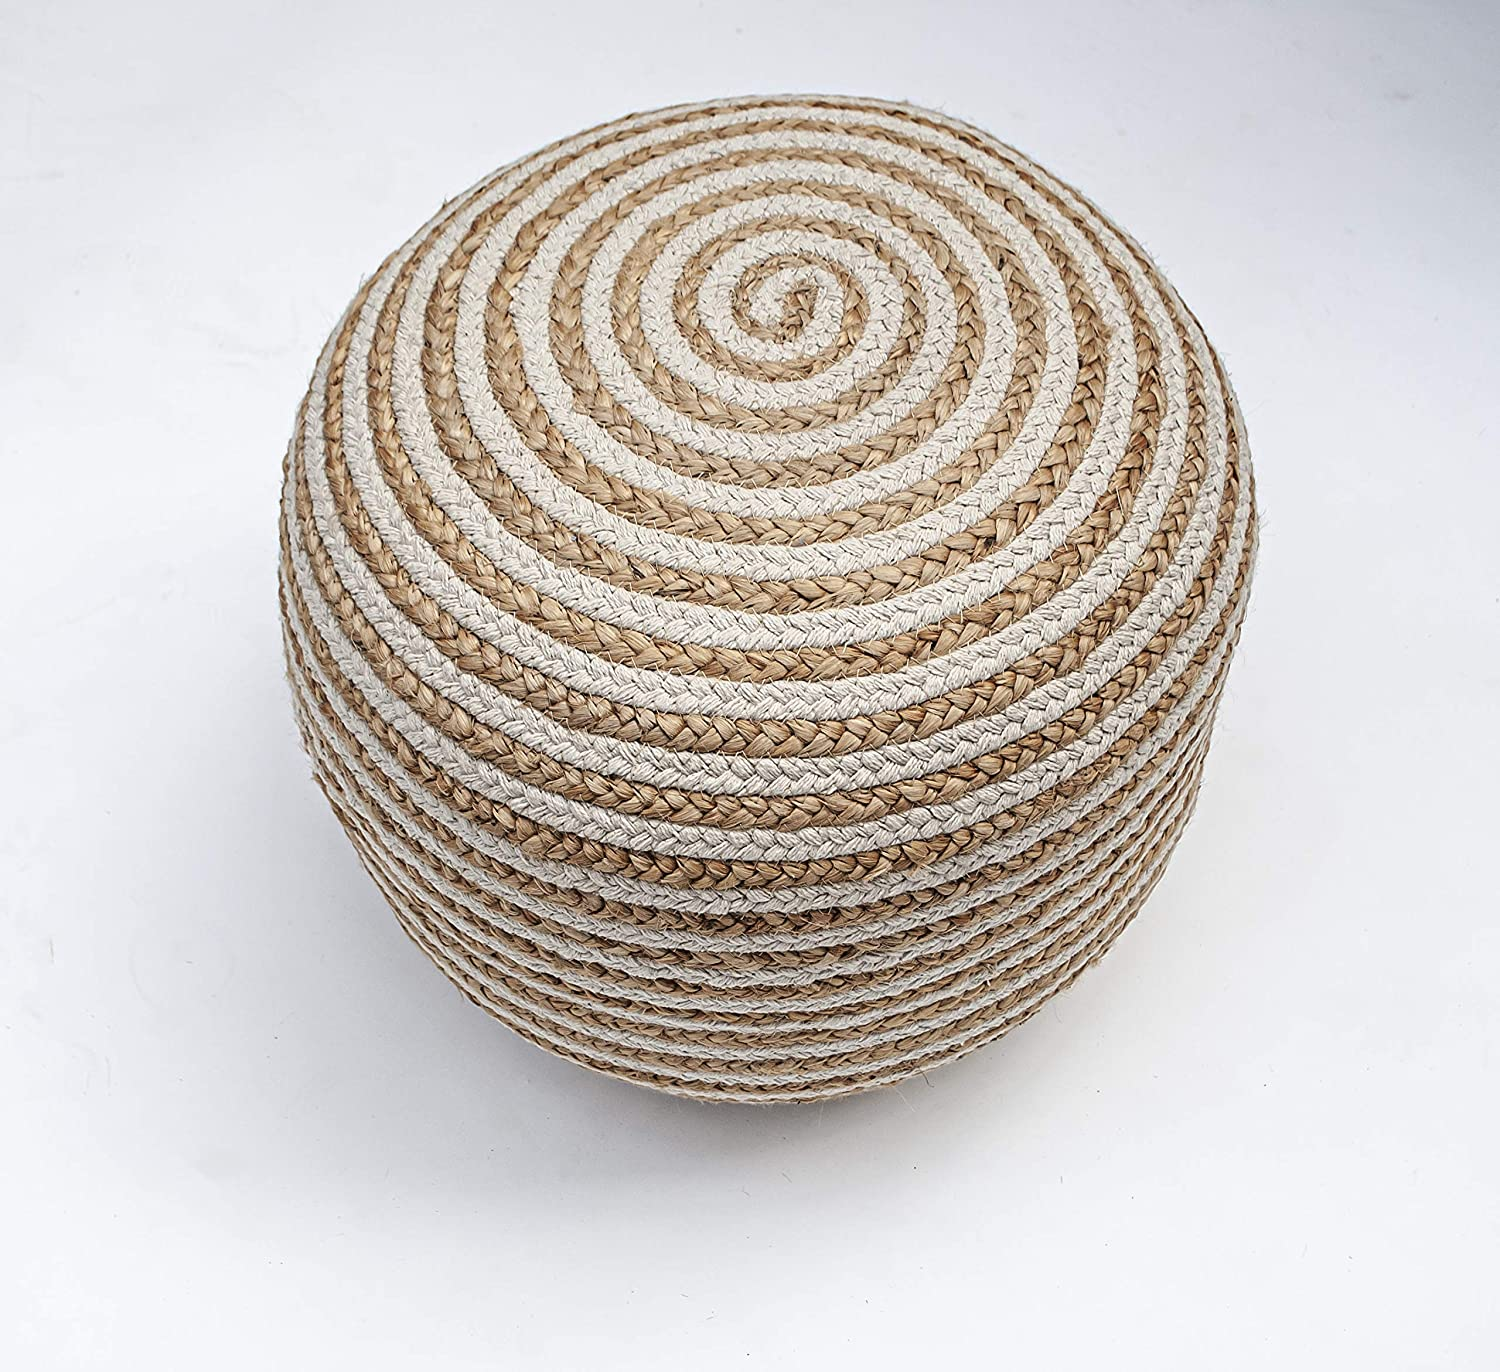 Chardin Home- Natural Braided Ottoman Pouf - Cozy & Bohemian Jute/Hemp Hand Crafted Casual Seating for Home, Office, Bedroom, 18